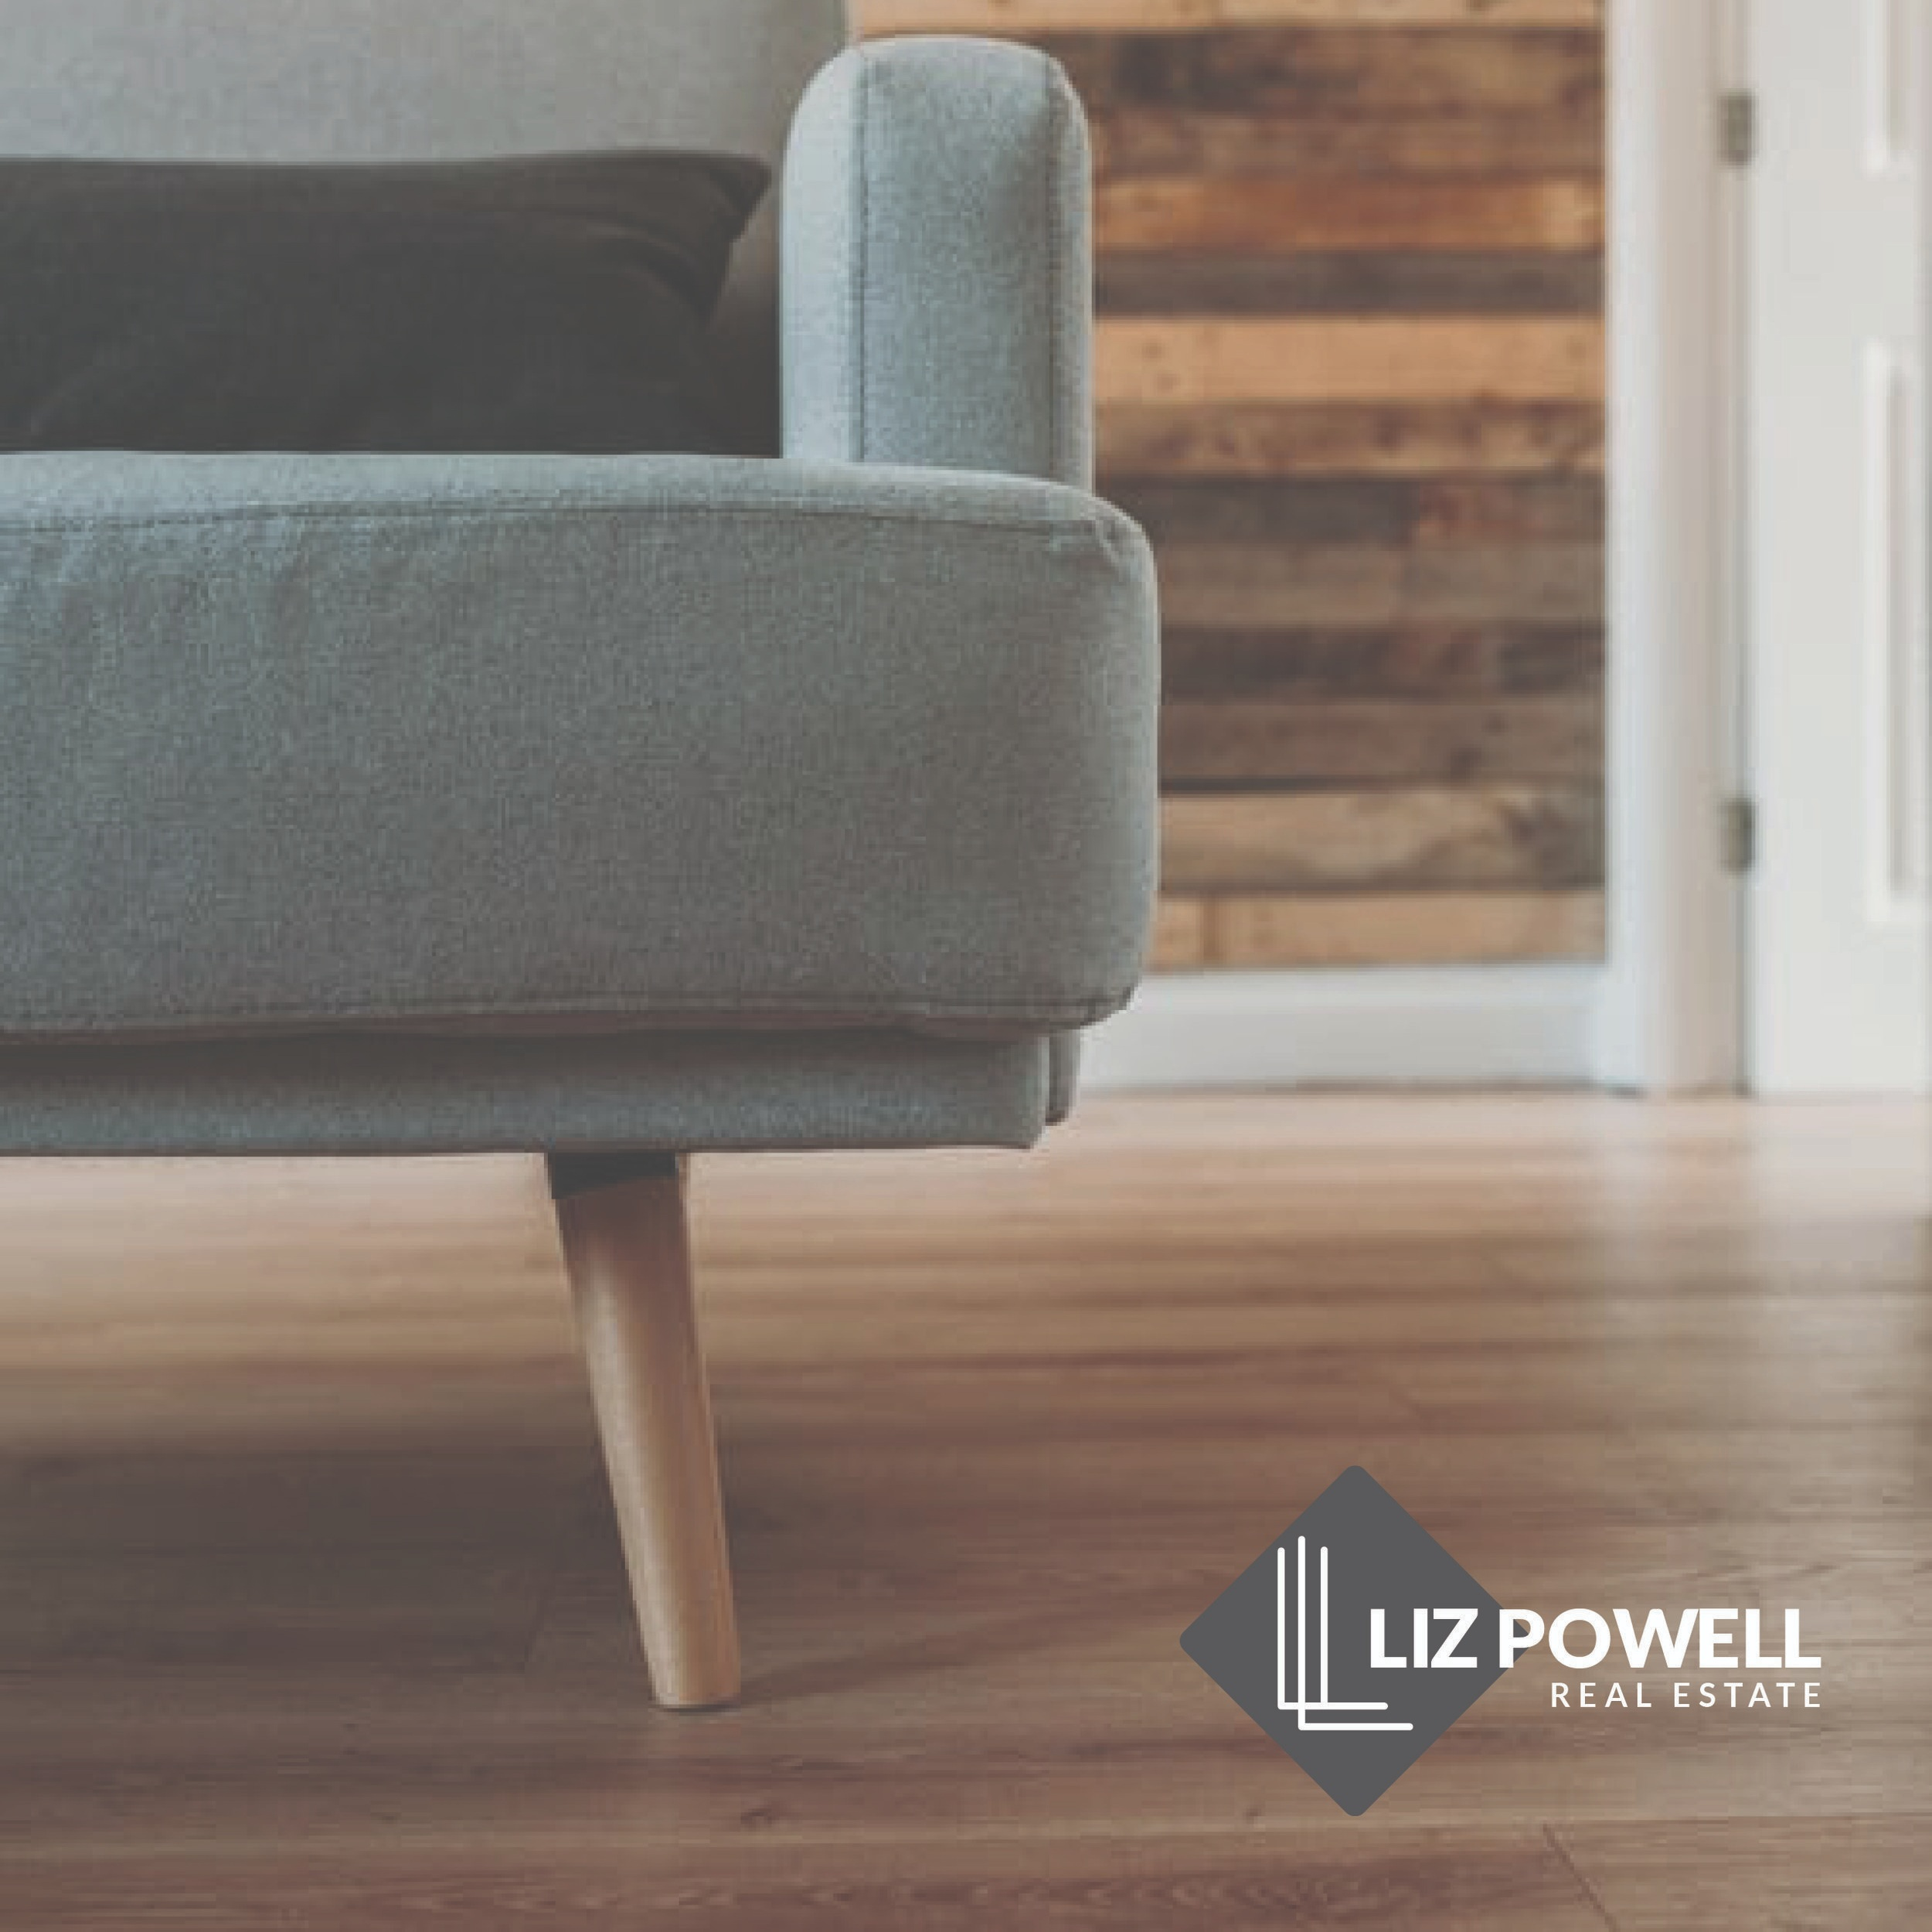 Liz+Powell+Real+Estate+Logo.jpg